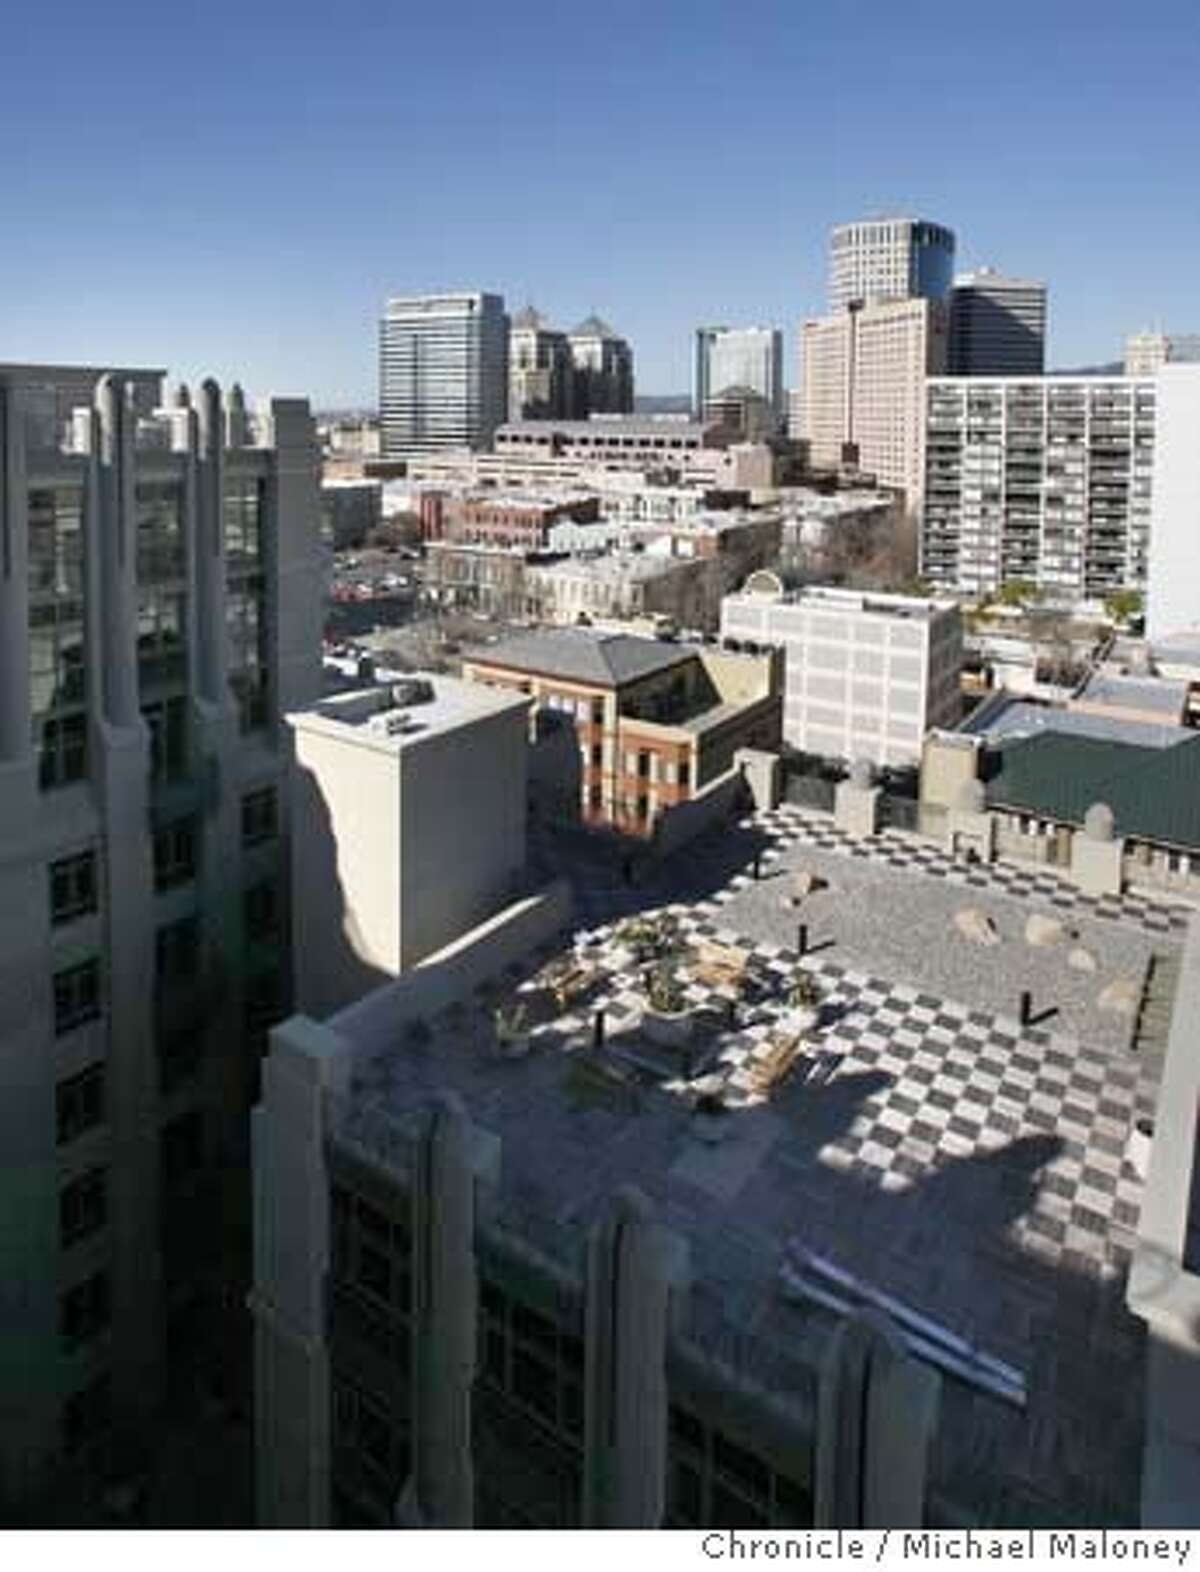 ###Live Caption:Downtown Oakland can be seen from the roof top common patio (lower right) of the new Eight Orchids European-style luxury condominiums, photographed on March 5, 2008. The developer of the recently opened Eight Orchids condominium complex in Oakland, Calif., hopes to sell off nearly a third of the units through a one-day auction on March 30, 2008. Observers say the tactic suggests builders are struggling to unload properties in the current financial climate. Photo by Michael Maloney / San Francisco Chronicle###Caption History:Downtown Oakland can be seen from the roof top common patio (lower right) of the new Eight Orchids European-style luxury condominiums, photographed on March 5, 2008. The developer of the recently opened Eight Orchids condominium complex in Oakland, Calif., hopes to sell off nearly a third of the units through a one-day auction on March 30, 2008. Observers say the tactic suggests builders are struggling to unload properties in the current financial climate. Photo by Michael Maloney / San Francisco Chronicle###Notes:###Special Instructions:MANDATORY CREDIT FOR PHOTOG AND SAN FRANCISCO CHRONICLE/NO SALES-MAGS OUT